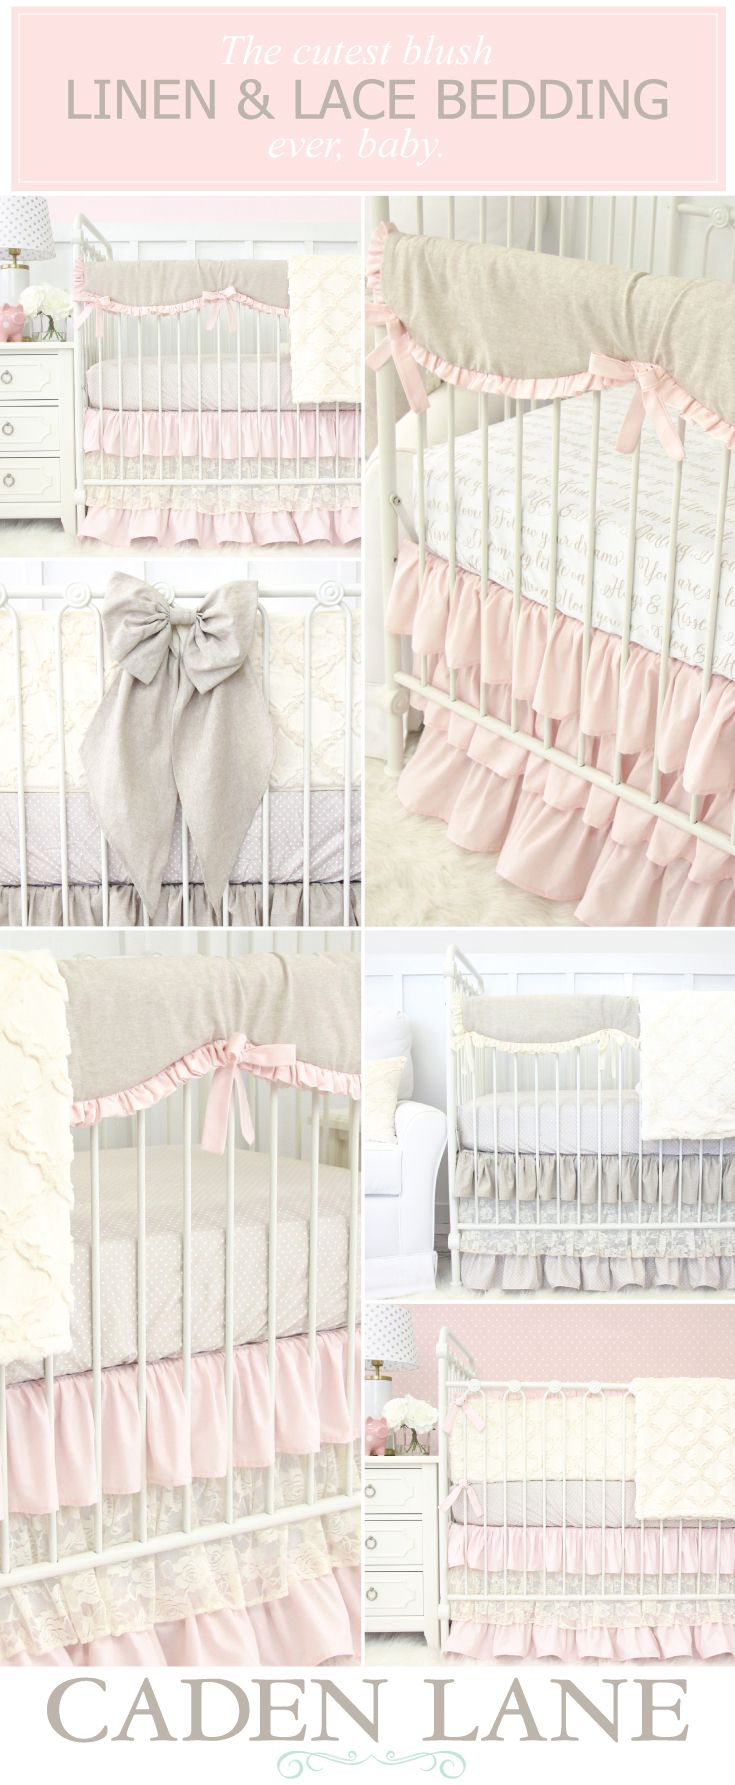 Our Linen & Lace Nursery Bedding Collection is absolutely stunning. Shop these looks and get the nursery look you've been dreaming of!